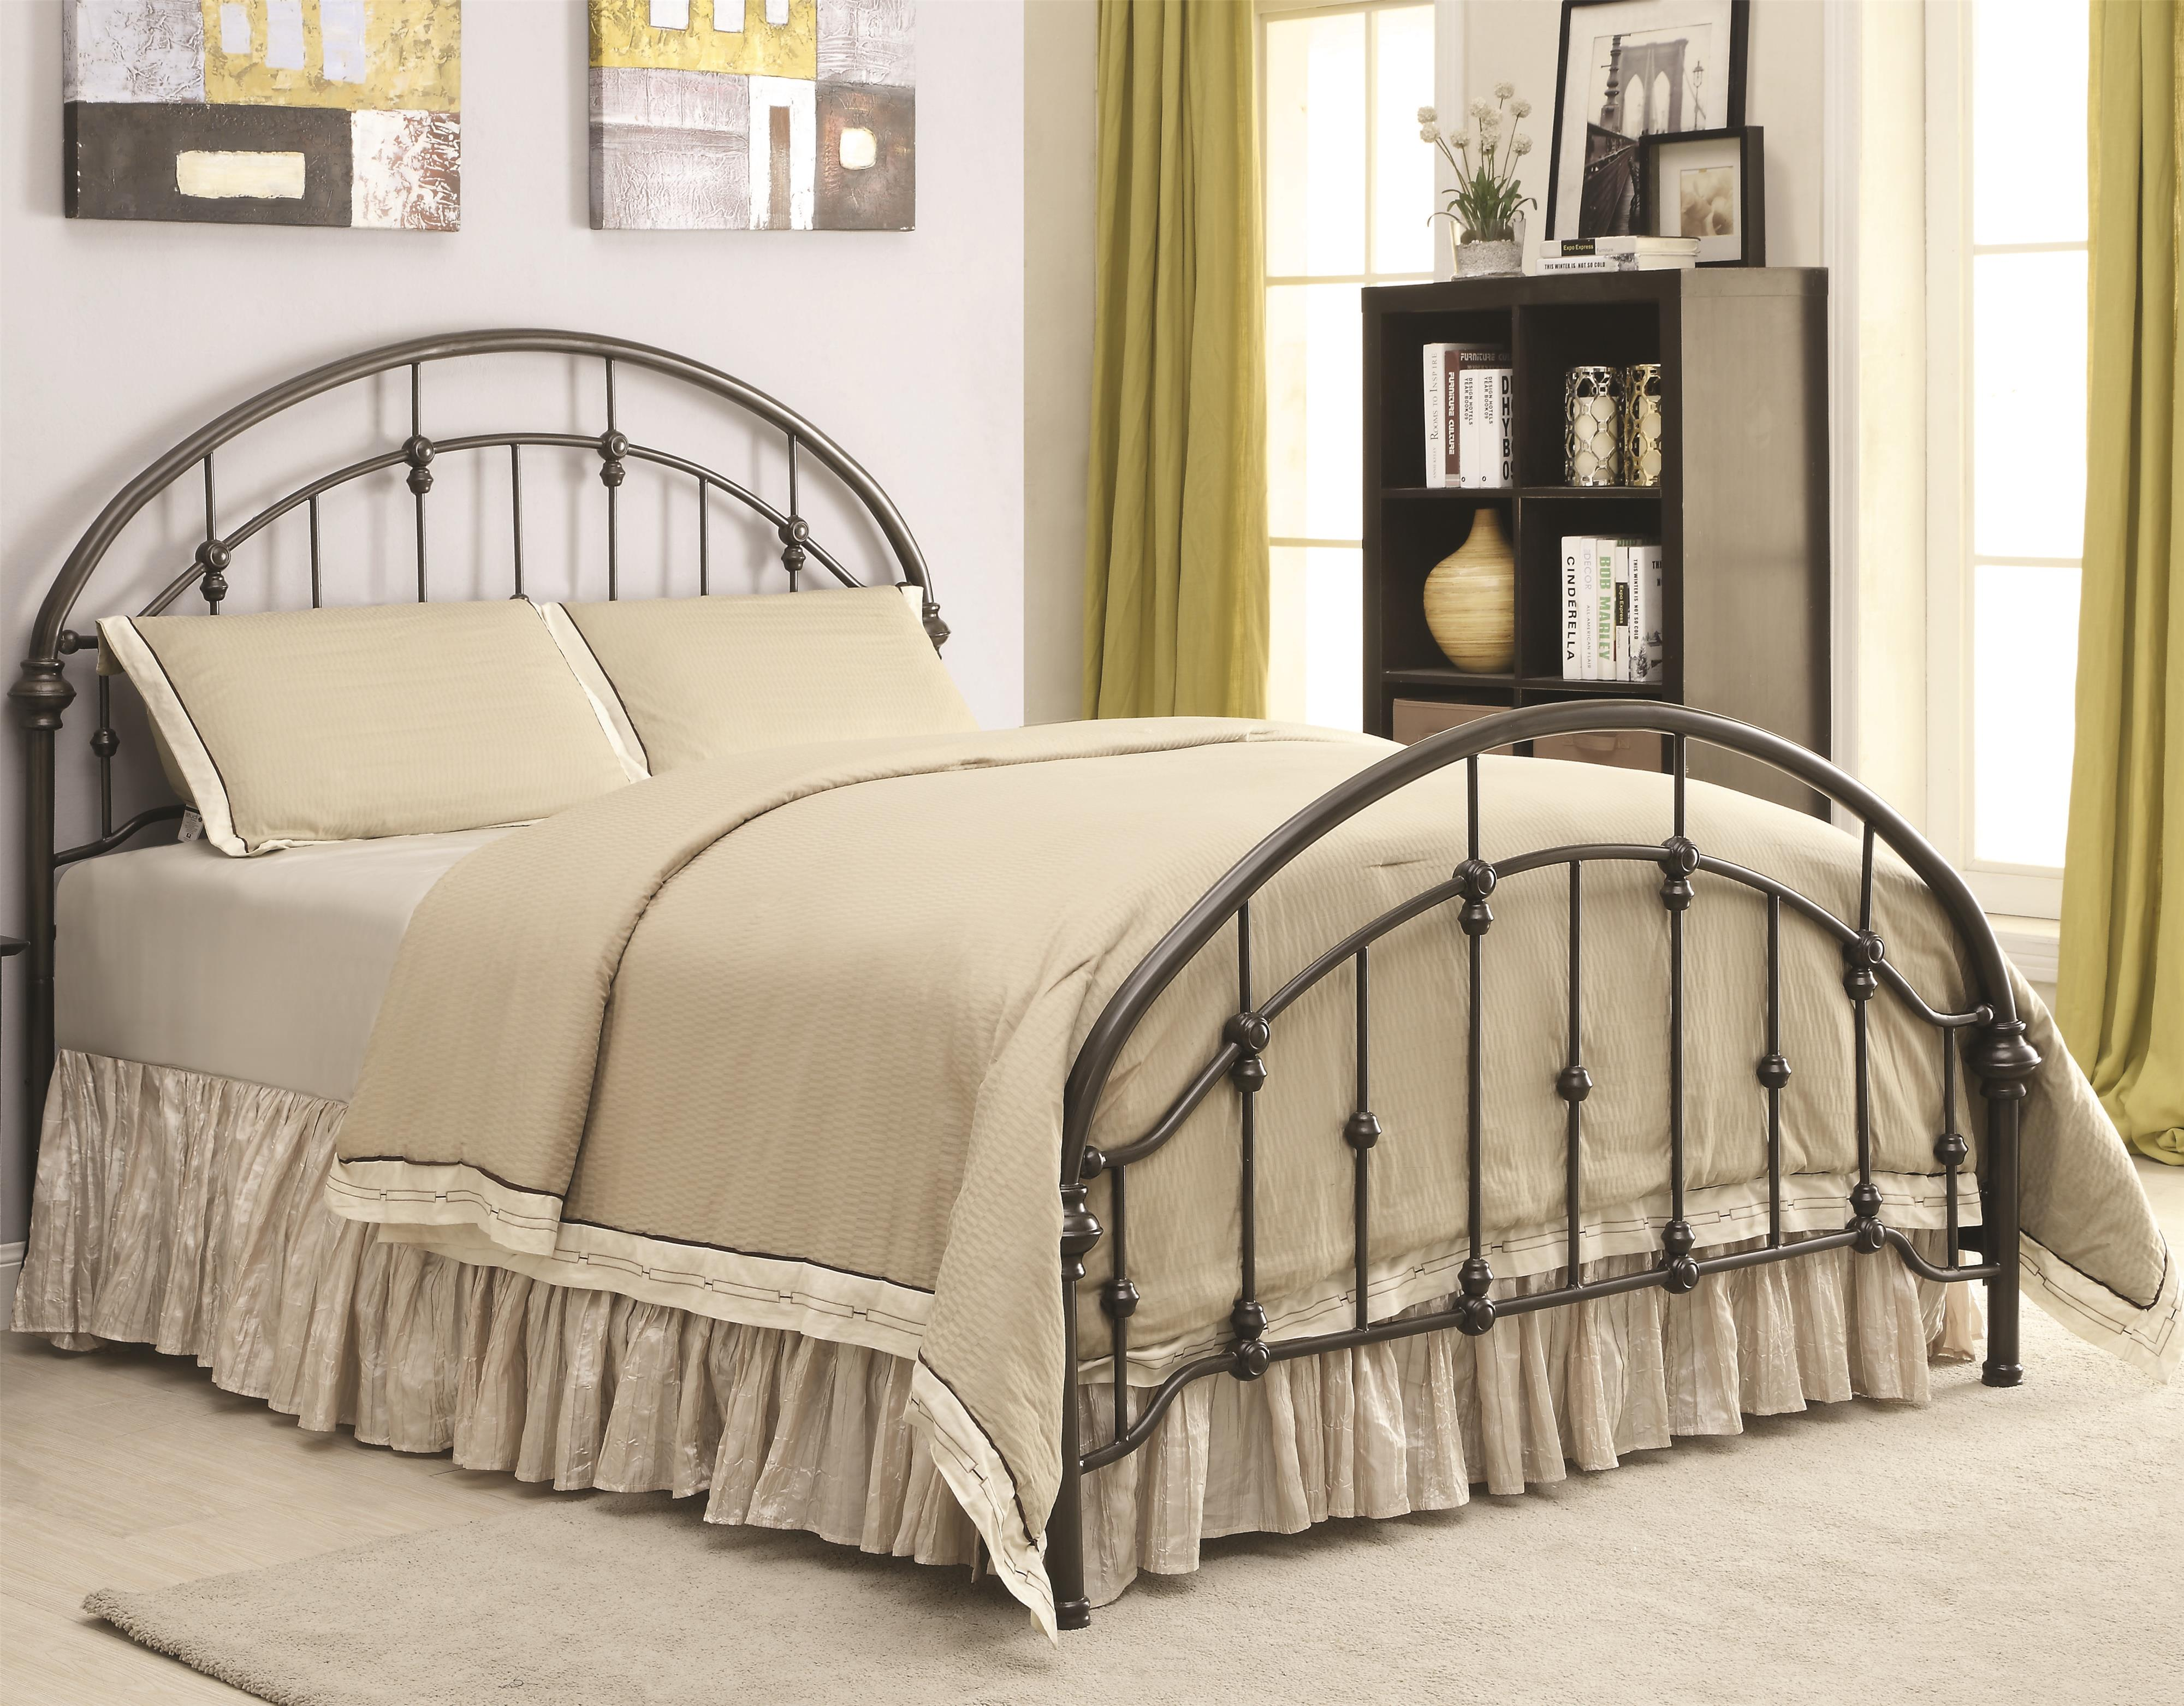 Coaster Iron Beds And Headboards Metal Curved Queen Bed Value City Furniture Panel Beds